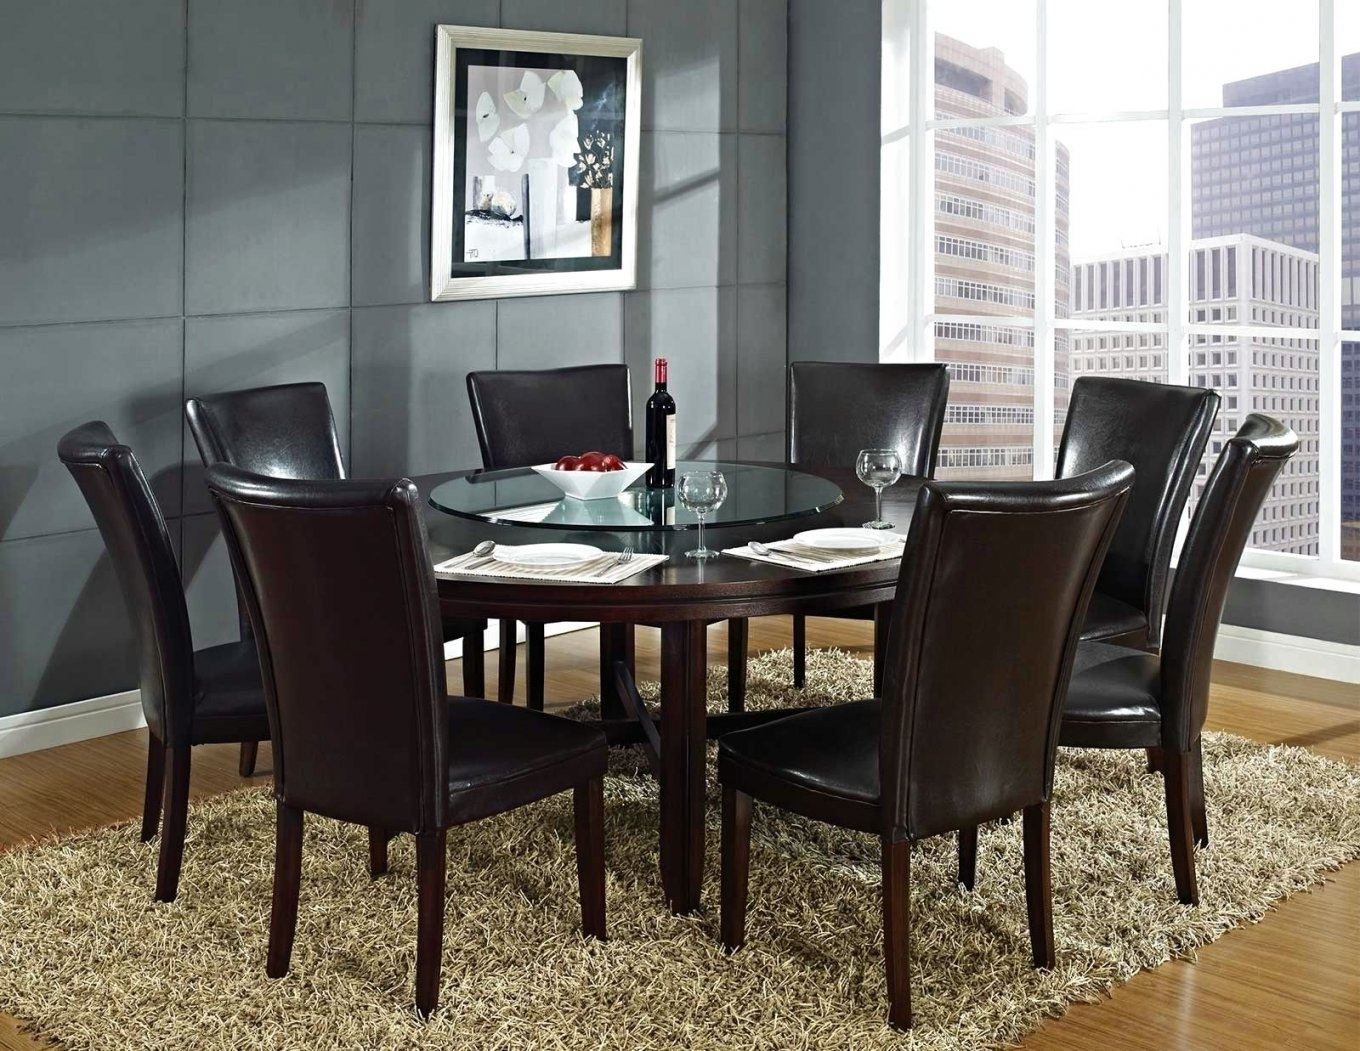 Fashionable Interesting Ideas 6 Person Round Dining Table Pretty Design Person Pertaining To 6 Person Round Dining Tables (View 9 of 25)